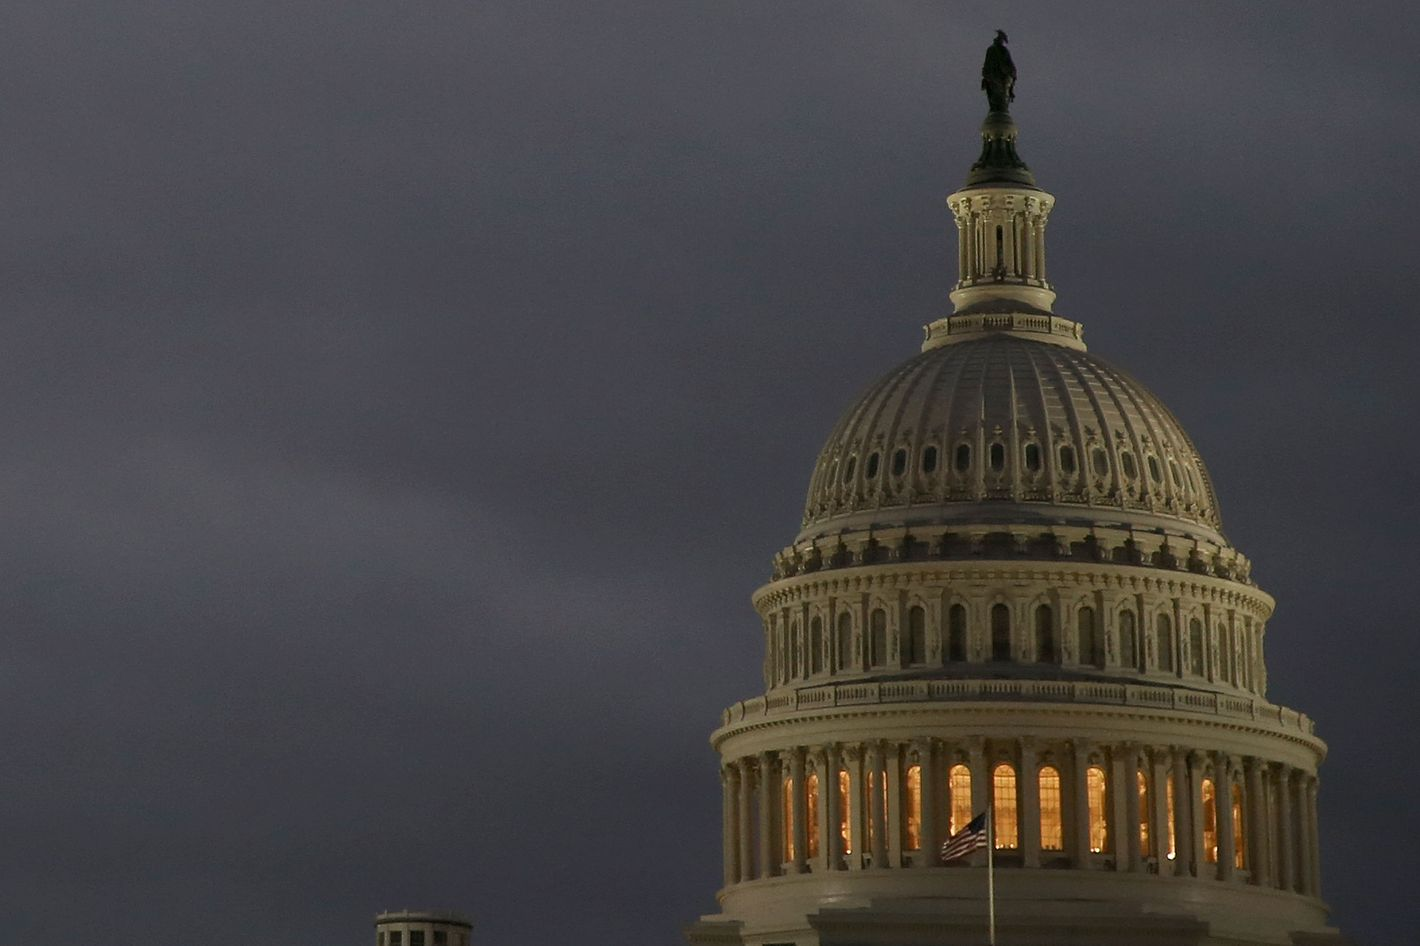 WASHINGTON, DC - OCTOBER 07:  Lights are on at the U.S. Capitol on October 7, 2013 in Washington, DC. Democrats and Republicans are still at a stalemate on funding for the federal government as the shut down goes into the seventh day.  (Photo by Mark Wilson/Getty Images)